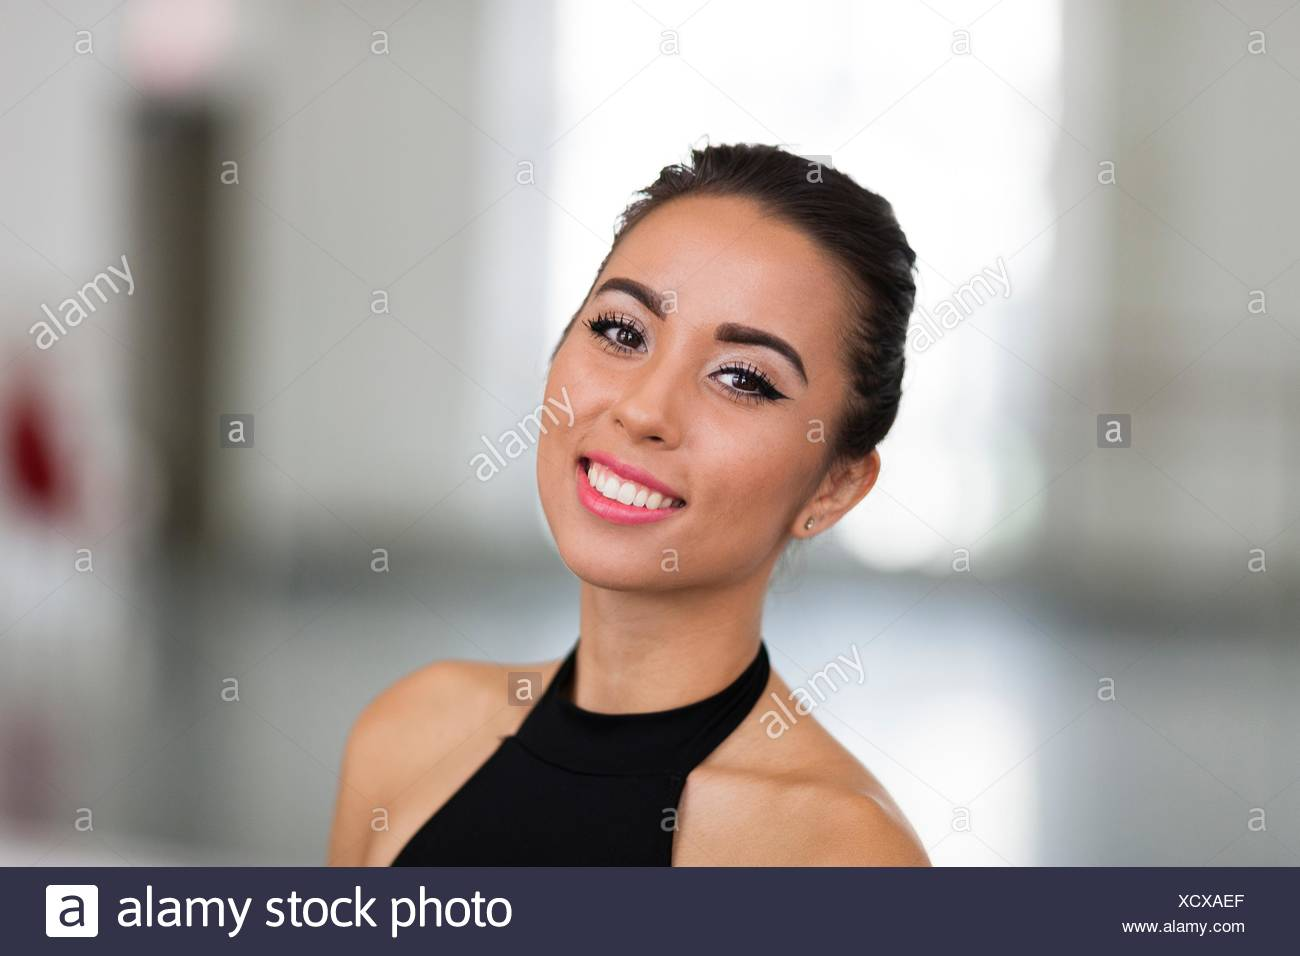 Portrait of young woman with bare shoulders looking at camera smiling - Stock Image